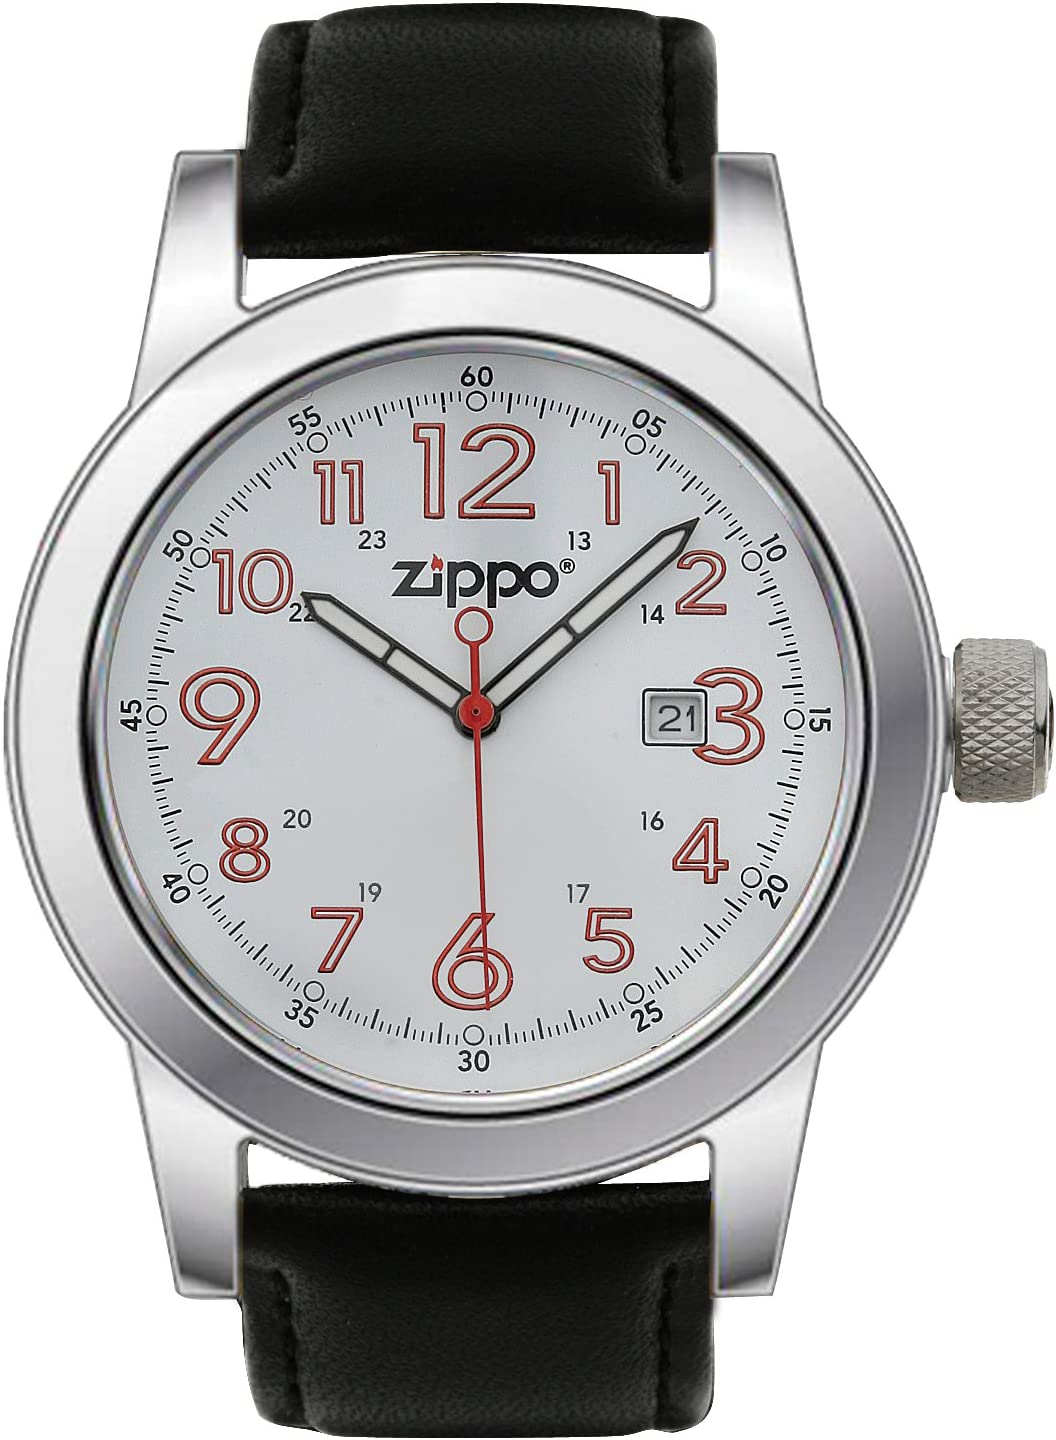 Zippo Men39 s Casual Outdoor Analog Adventure Watch – White Face Stainless Steel